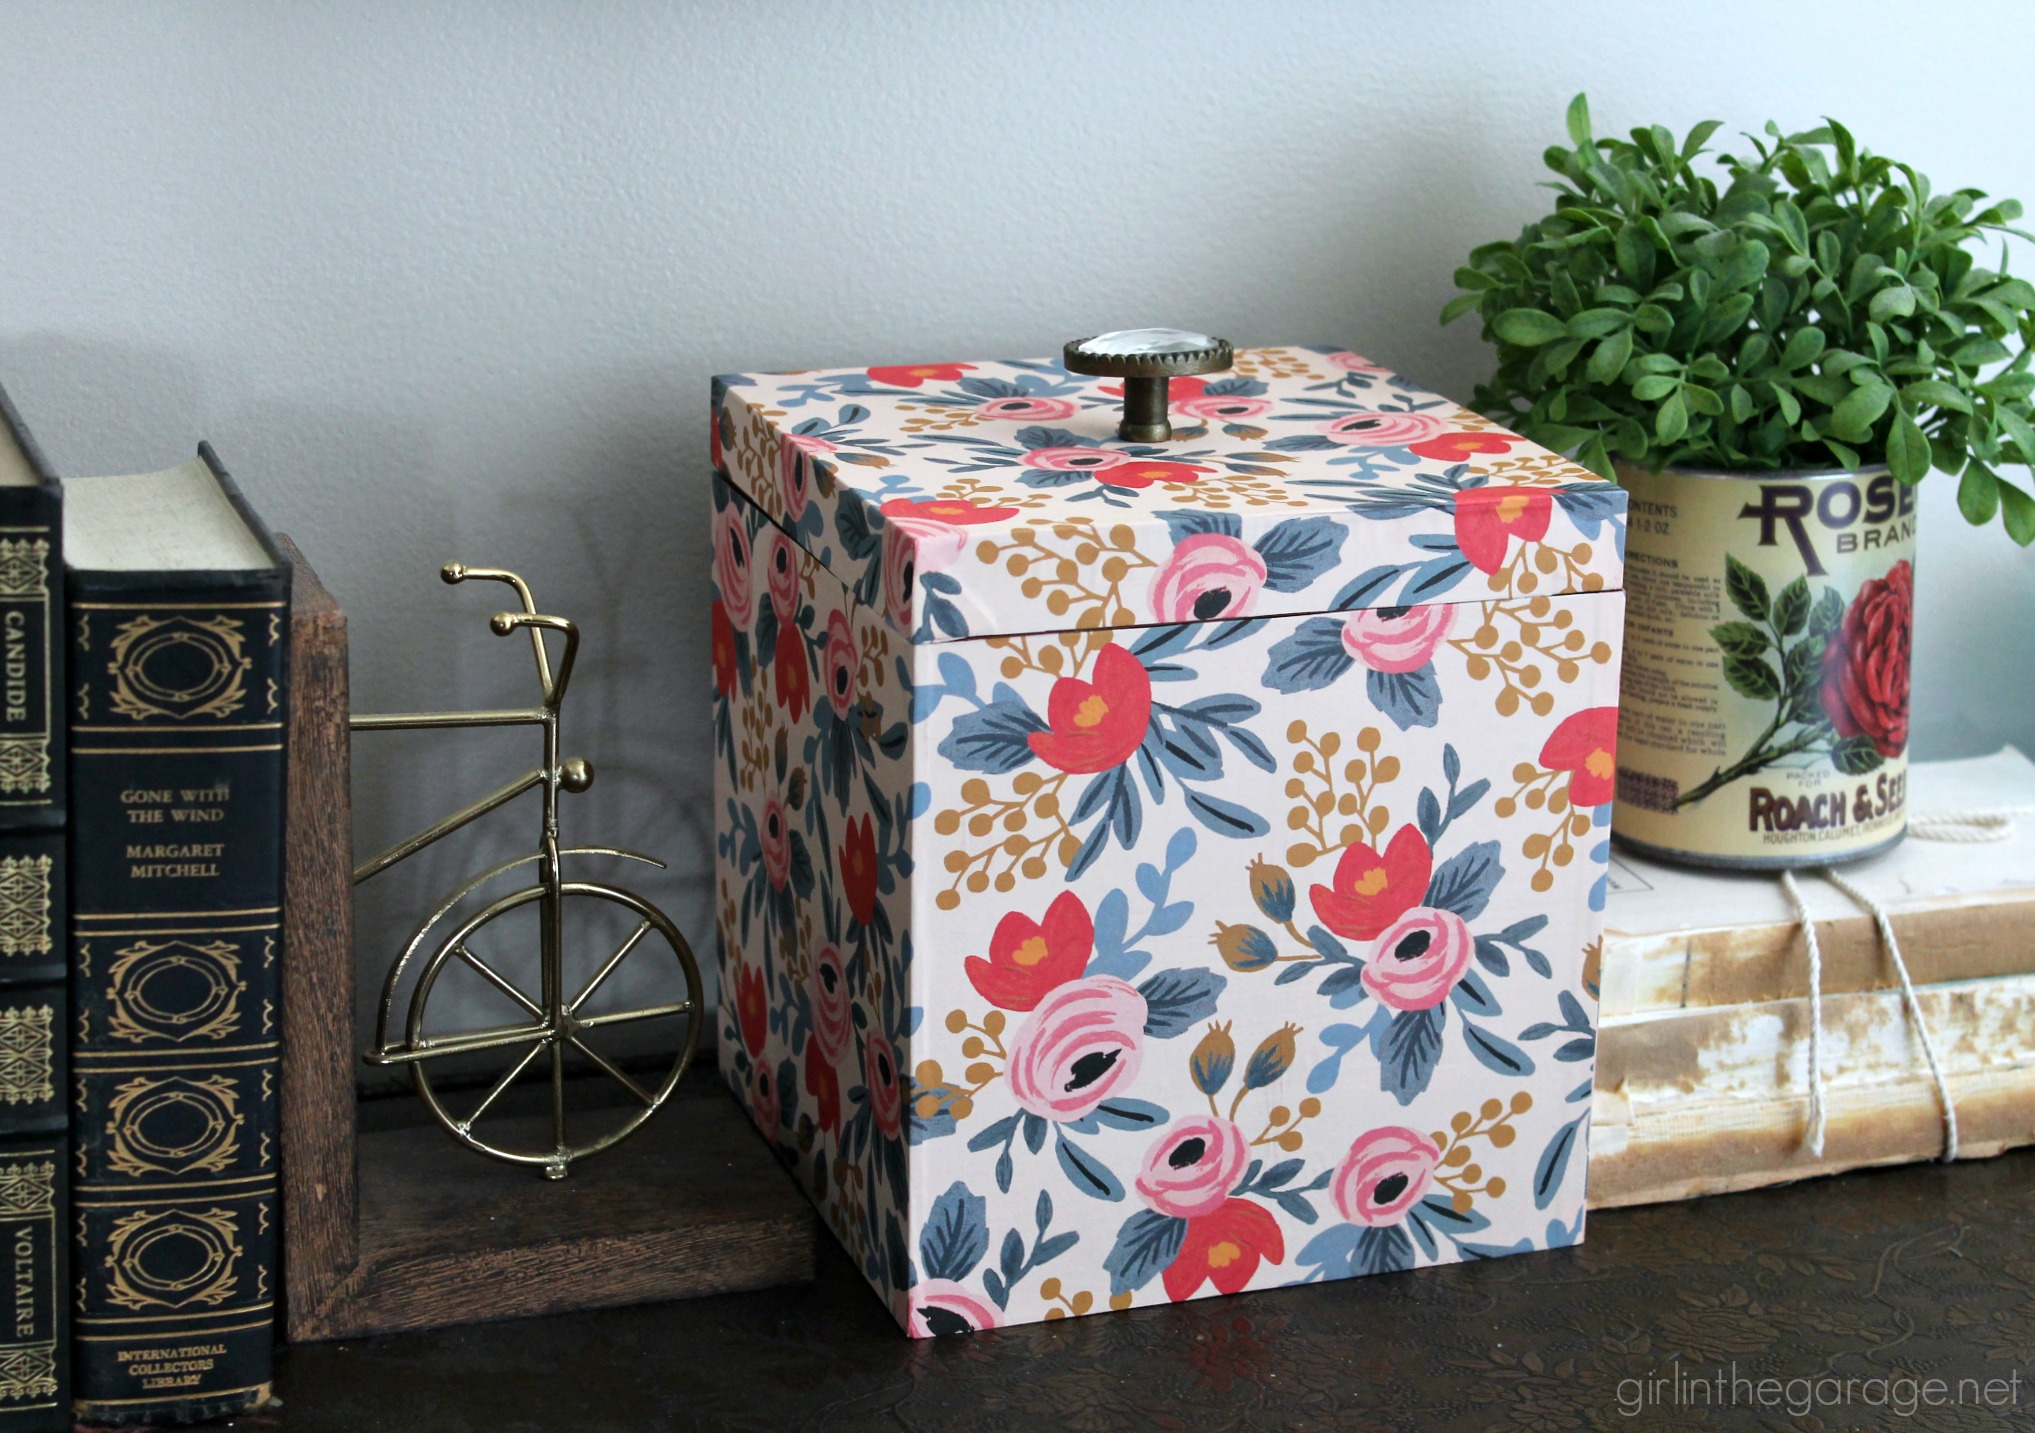 ... DIY Storage Box Makeover With Decoupage Wrapping Paper From Rifle Paper  Co. By Girl In